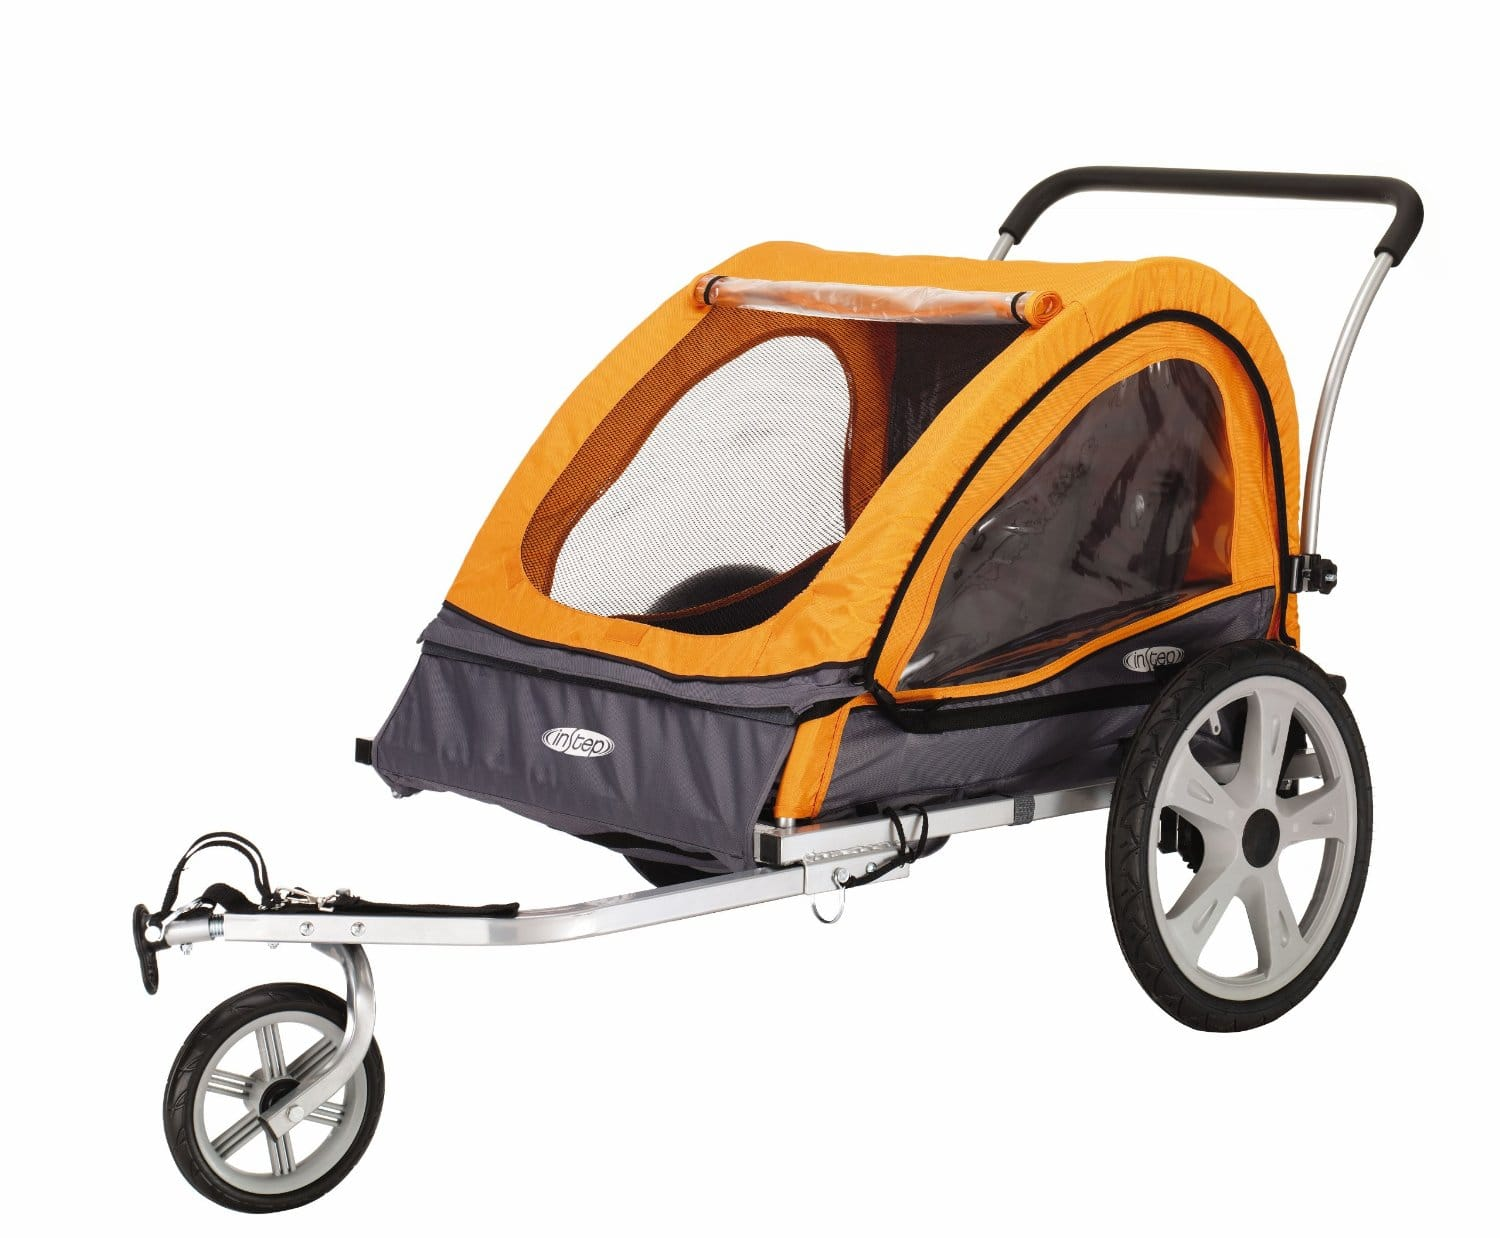 InStep Quick N EZ Double Bicycle Trailer  $68 + Free Shipping